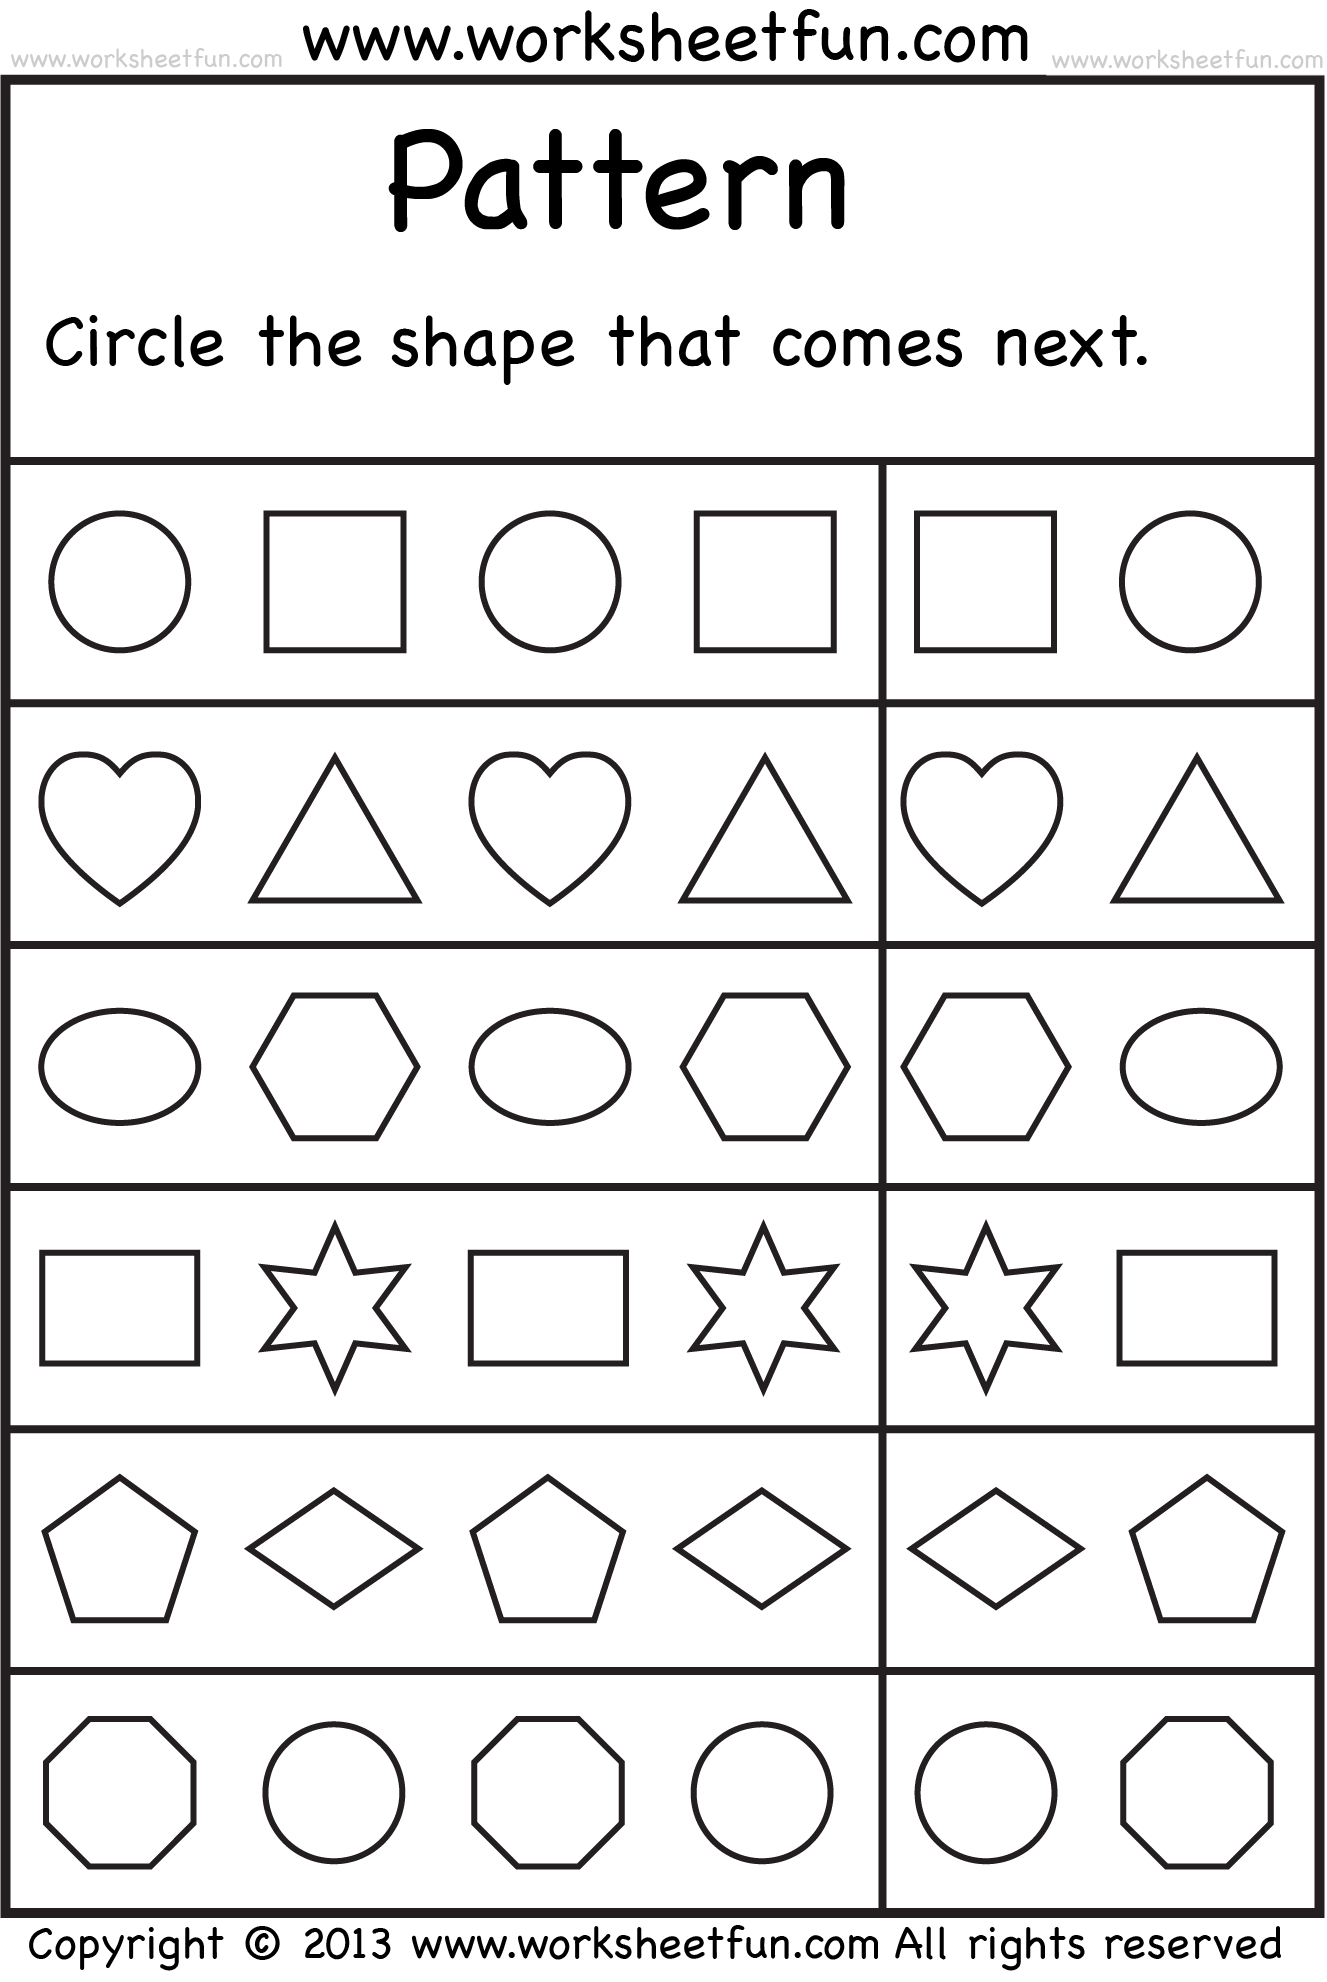 Weirdmailus  Fascinating  Images About School Worksheets On Pinterest  Number Words  With Likable  Images About School Worksheets On Pinterest  Number Words Alphabet Worksheets And Free Printable Kindergarten Worksheets With Enchanting Adverbs Worksheet For Grade  Also Kuta Worksheet Geometry In Addition Math Shape Worksheets And Maths Puzzles For Kids Worksheets As Well As  Times Table Worksheet Printable Additionally Math For Everyone Worksheets From Pinterestcom With Weirdmailus  Likable  Images About School Worksheets On Pinterest  Number Words  With Enchanting  Images About School Worksheets On Pinterest  Number Words Alphabet Worksheets And Free Printable Kindergarten Worksheets And Fascinating Adverbs Worksheet For Grade  Also Kuta Worksheet Geometry In Addition Math Shape Worksheets From Pinterestcom